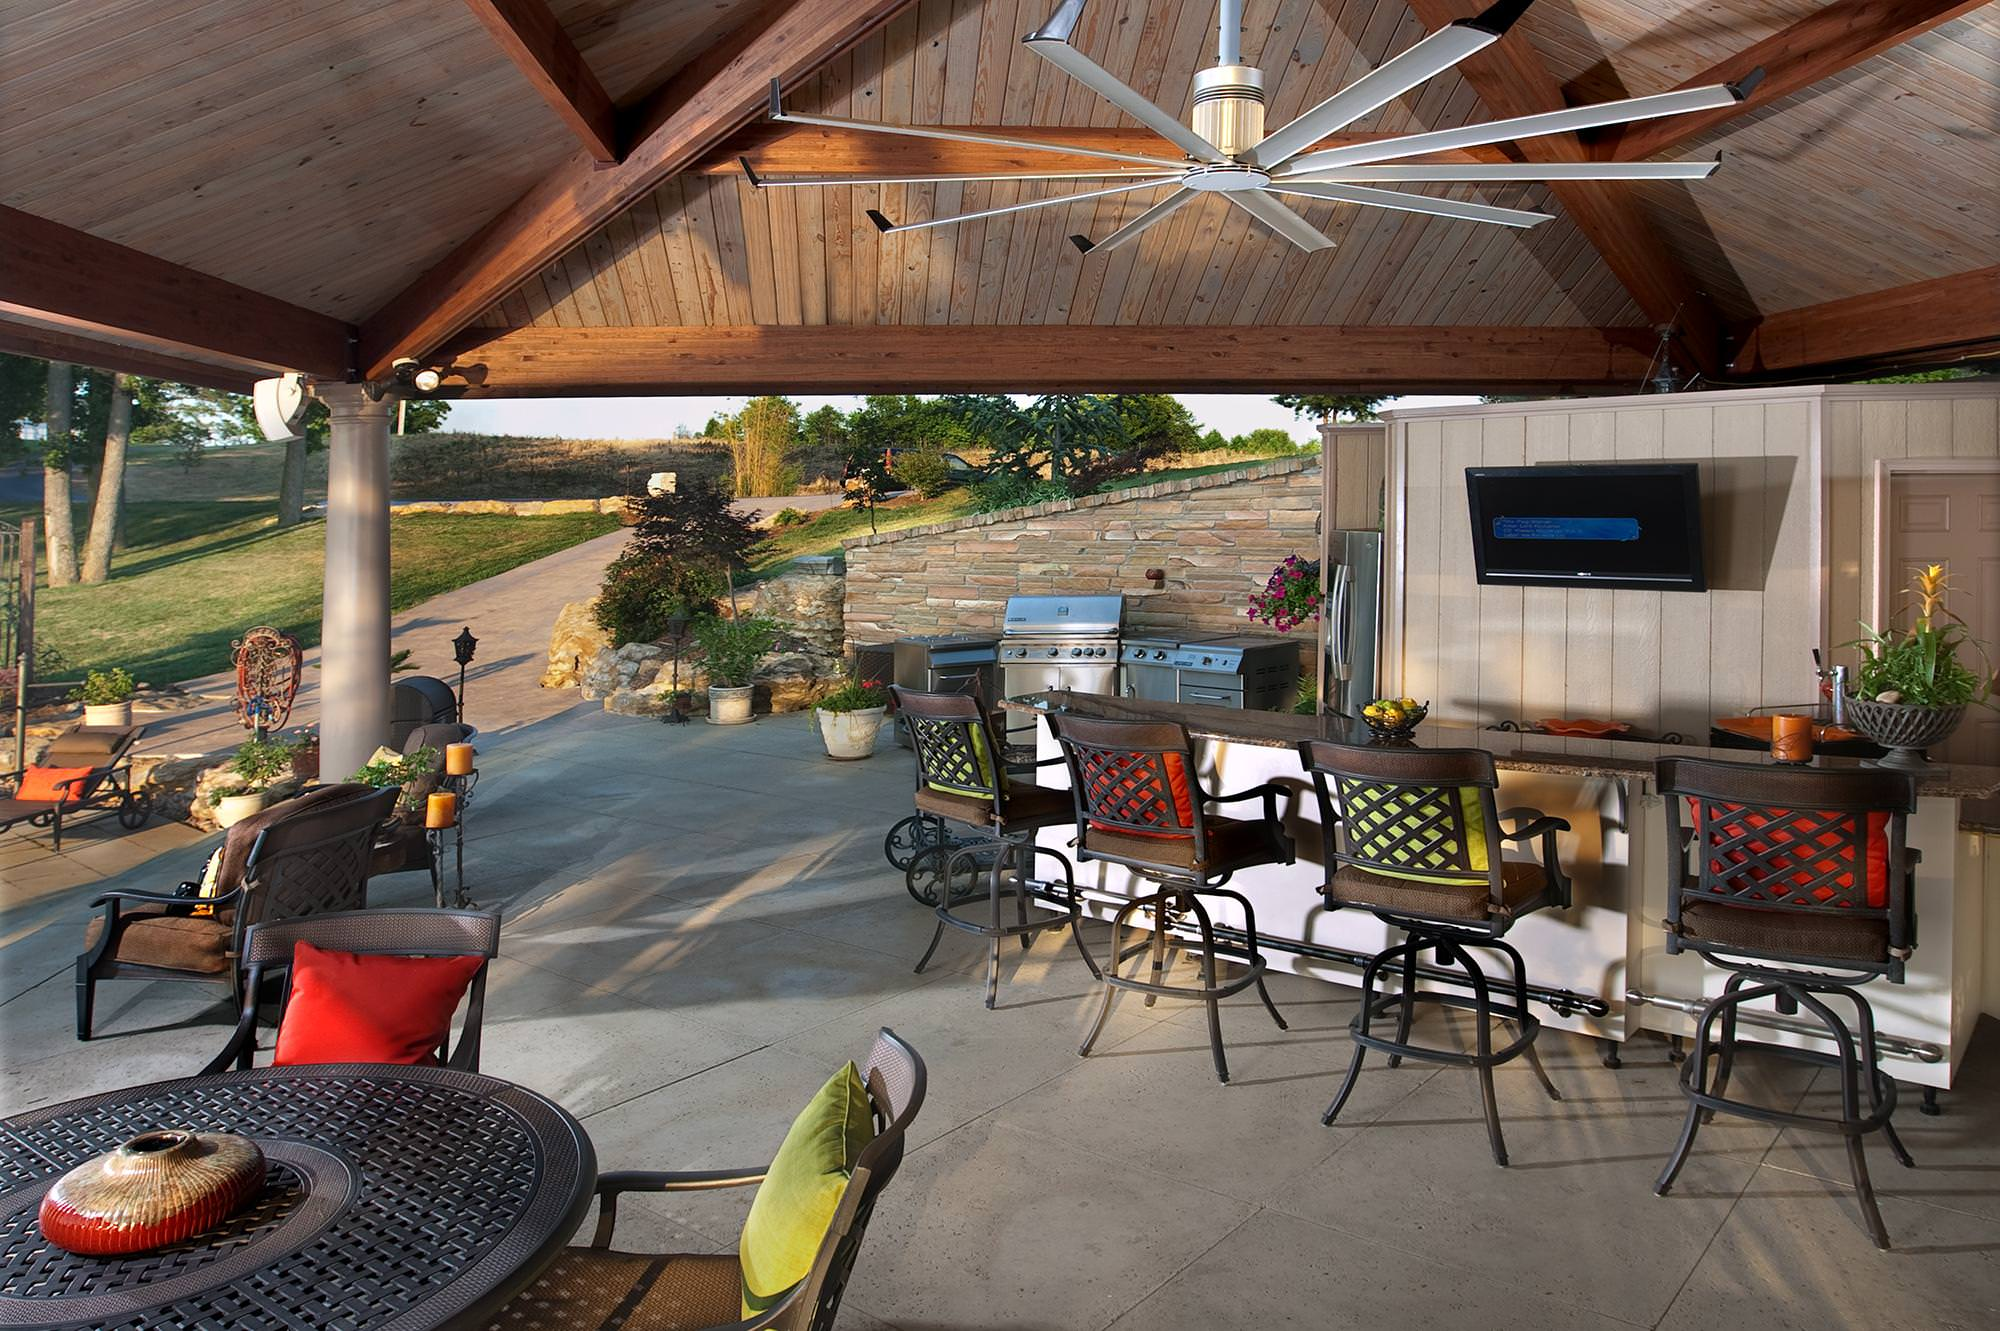 Powerful Quiet Outdoor Ceiling Fans for Open Air Venues from Big